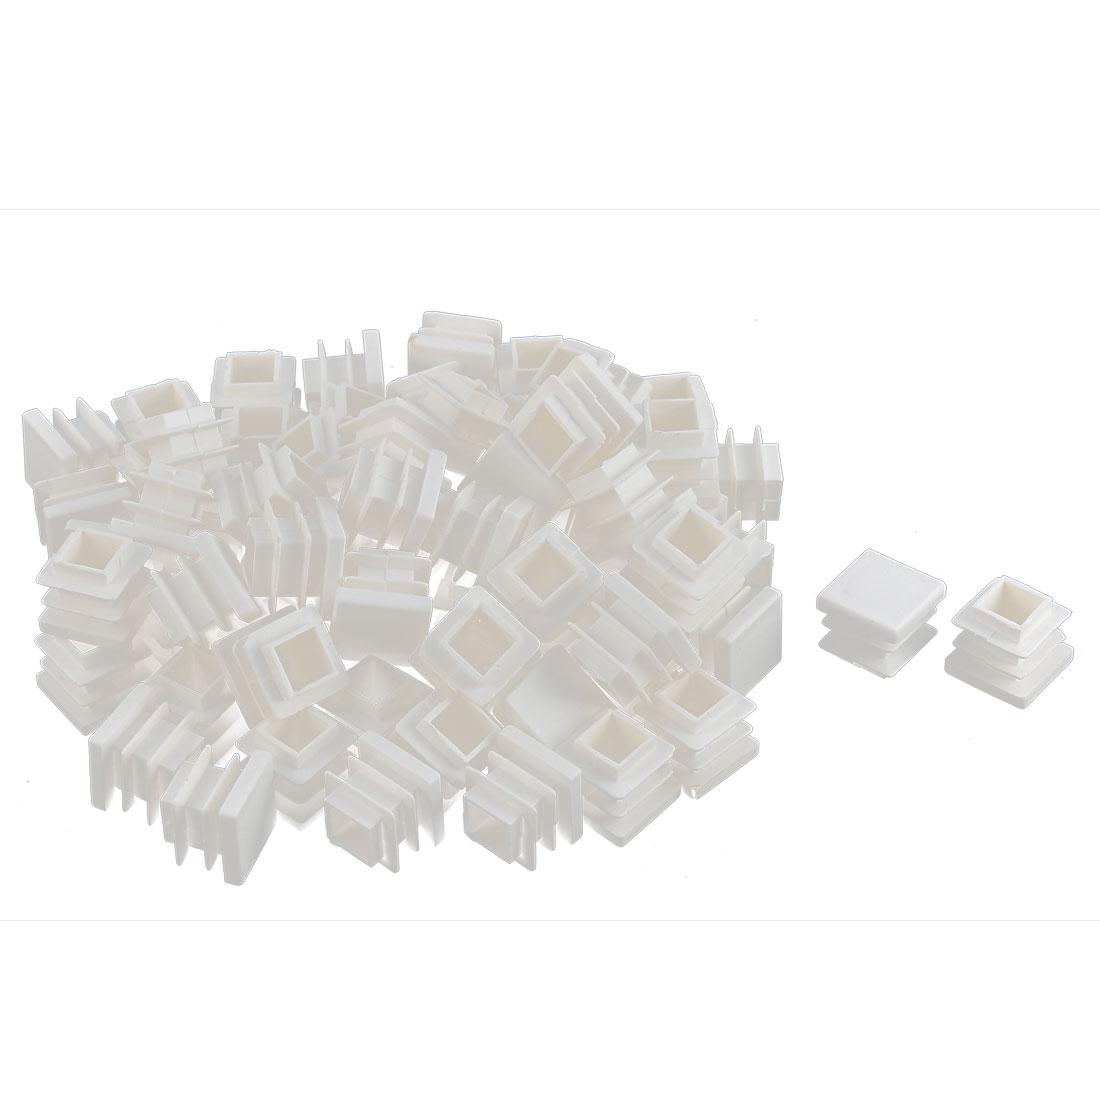 Furniture Desk Chair Legs Plastic Square Tube Pipe Insert Cover End Caps White 16 x 16mm 70pcs